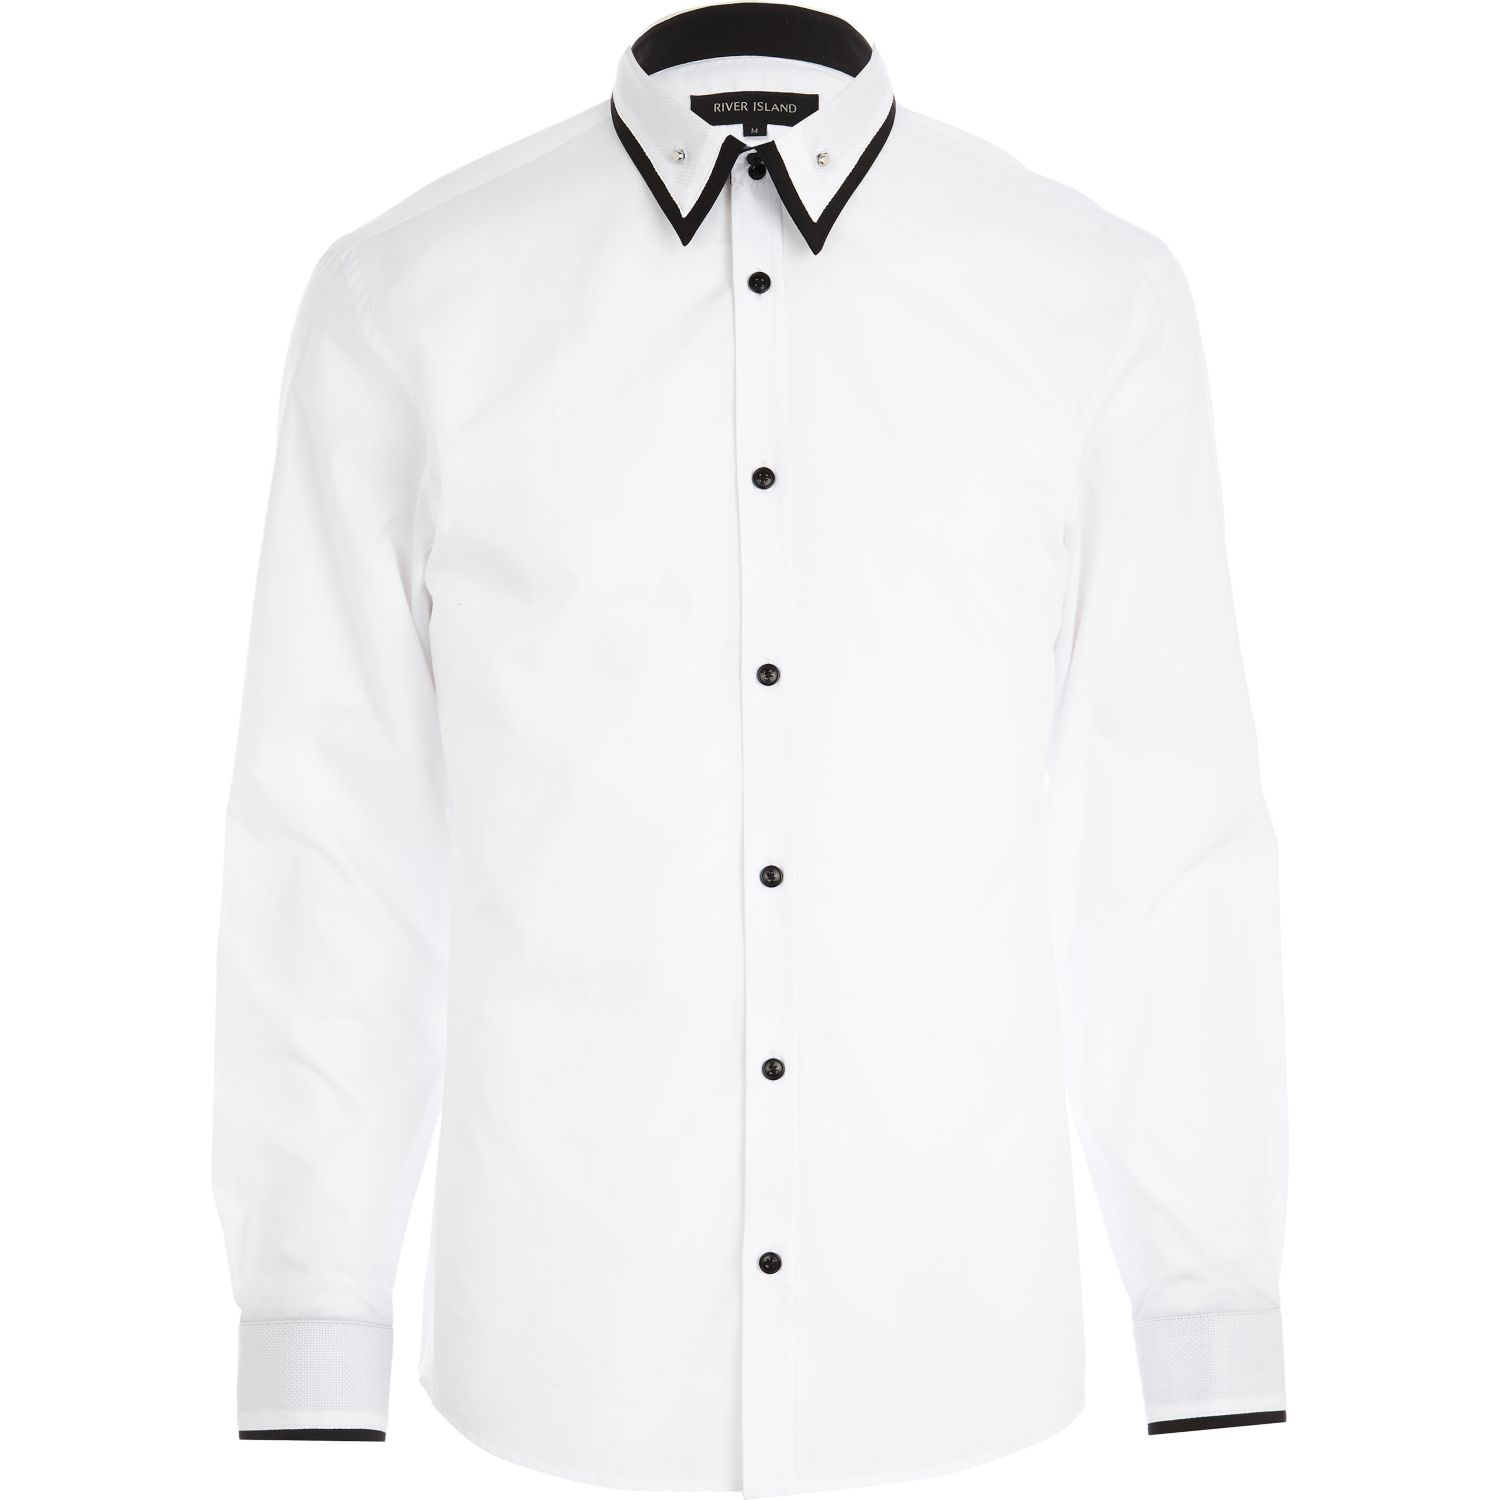 Similiar Ladies White Shirt With Black Trims Keywords